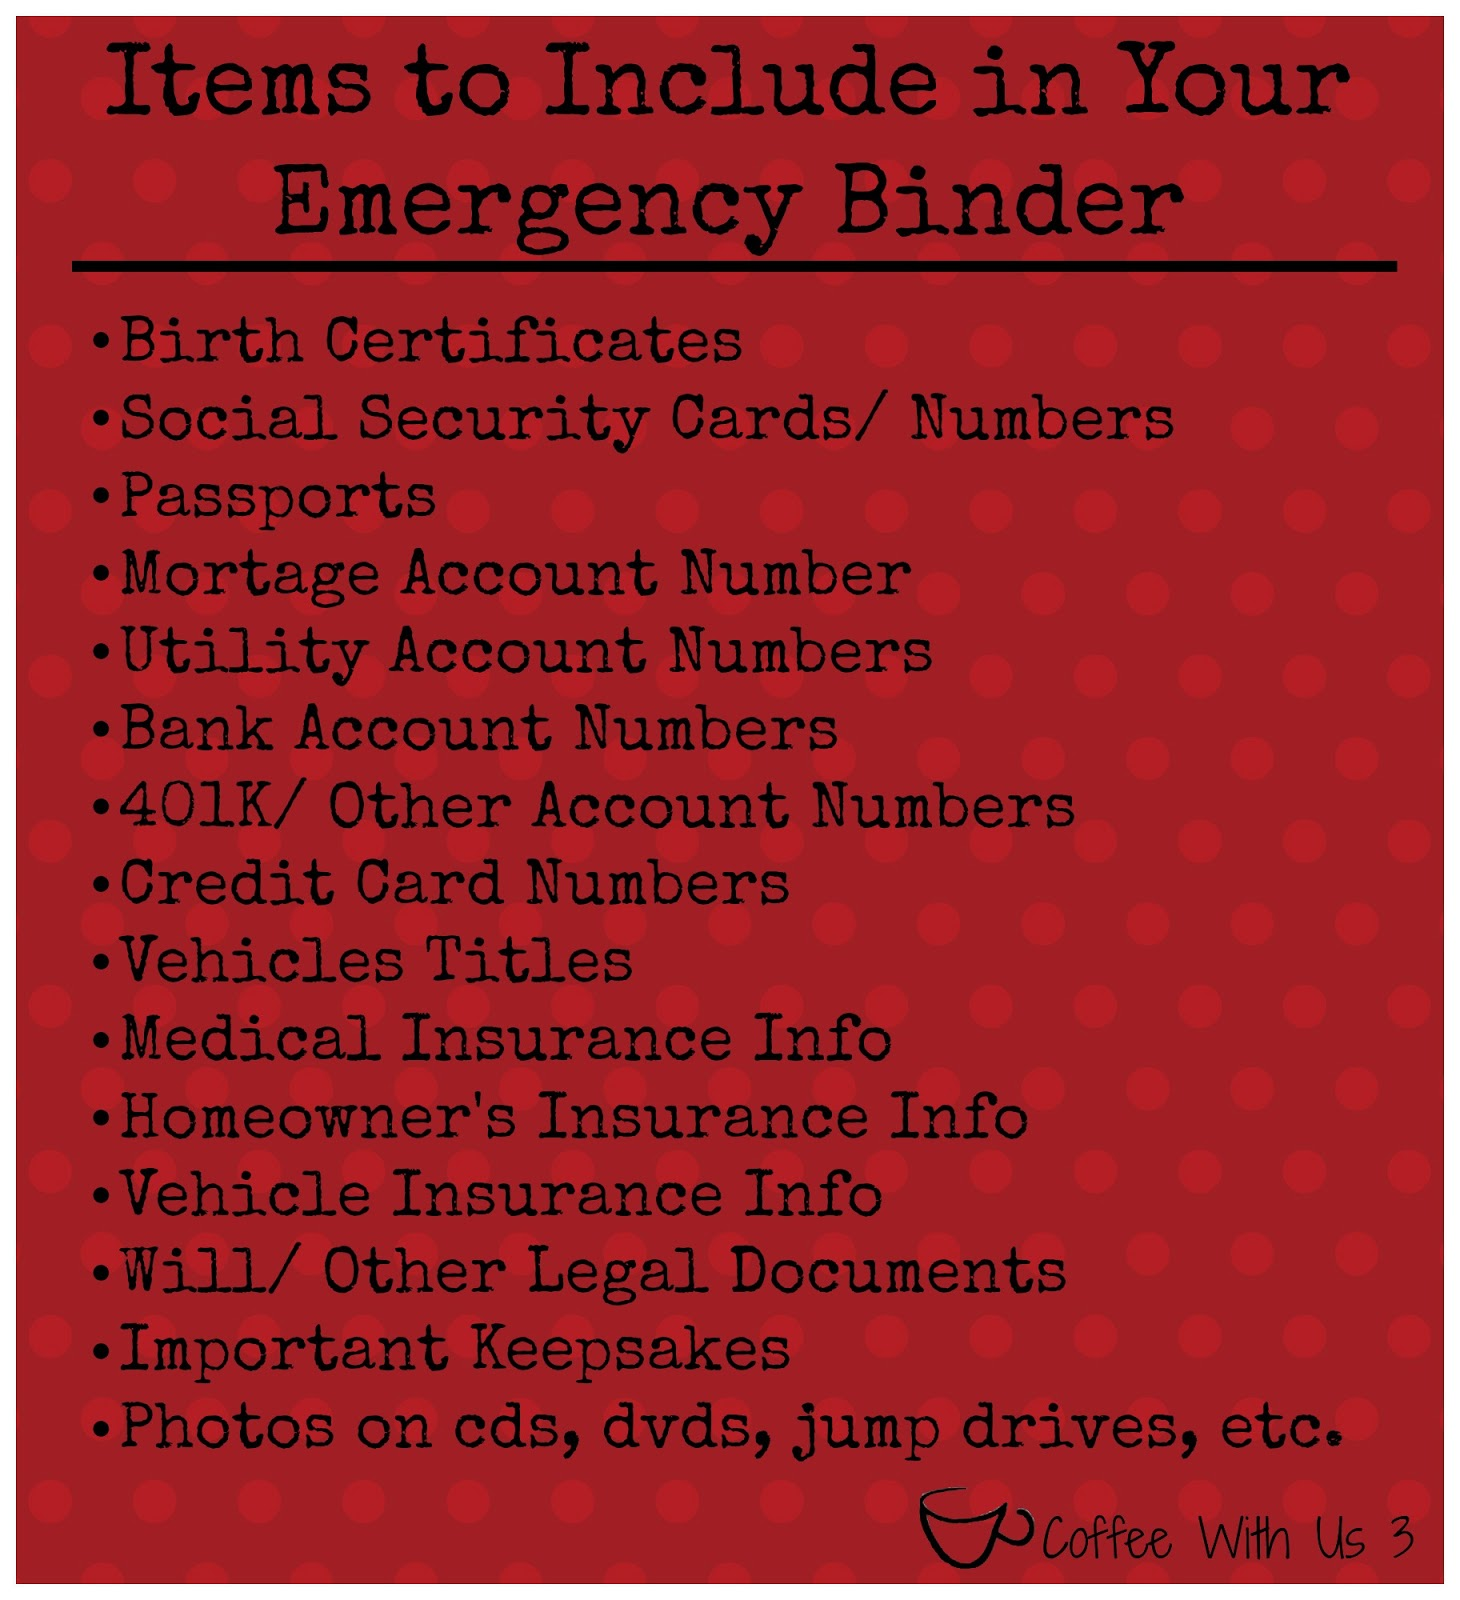 Making An Emergency Binder